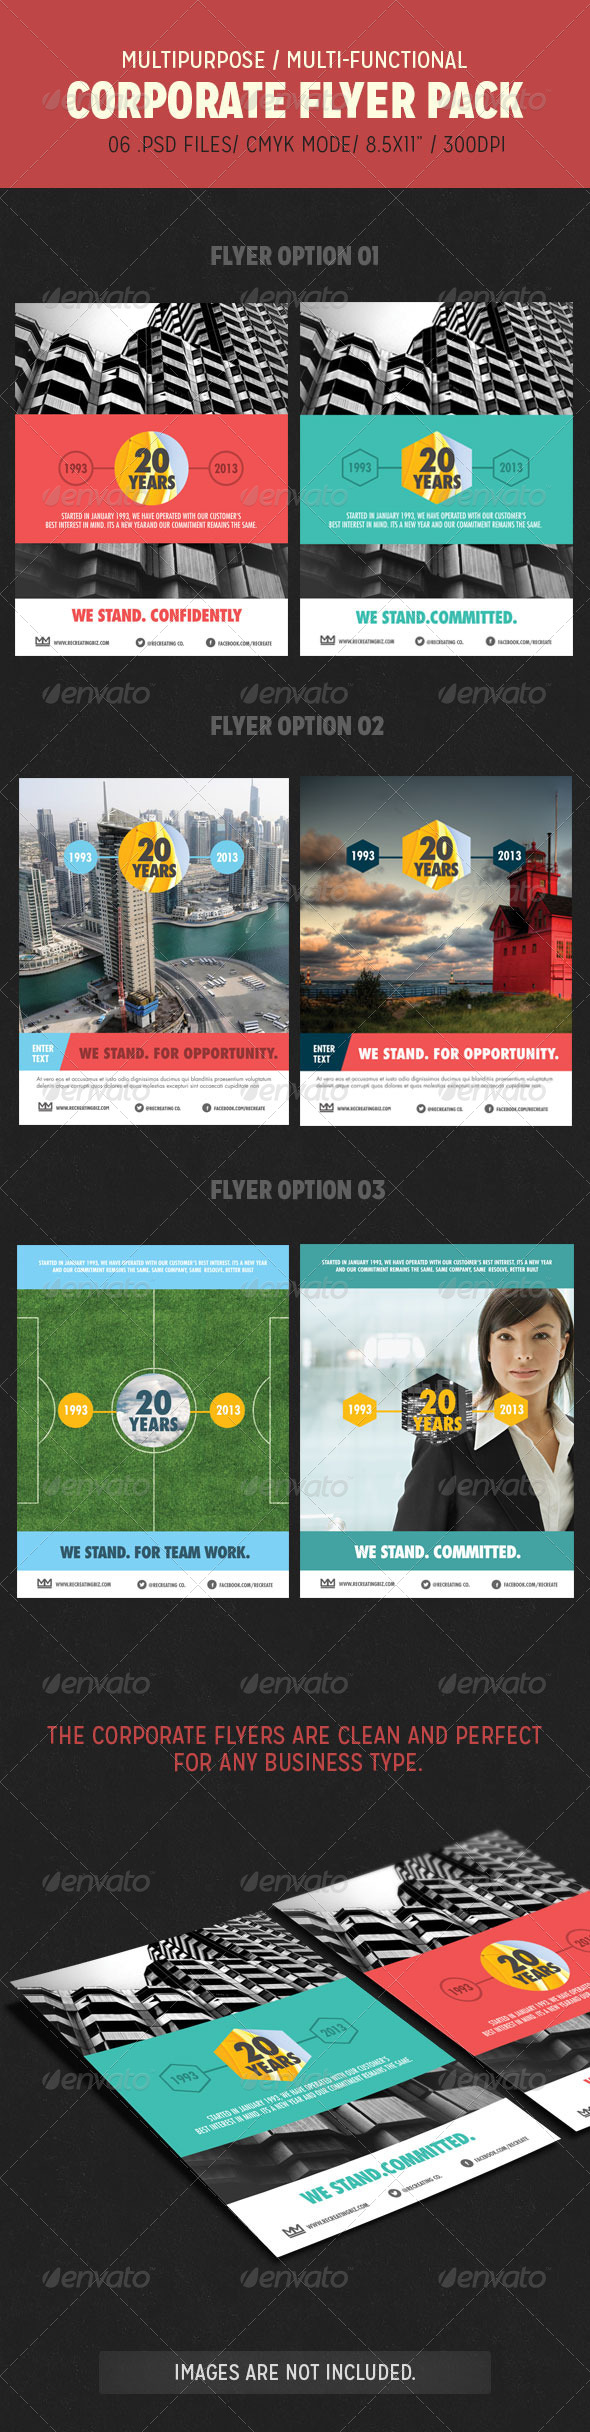 GraphicRiver Corporate Flyer Pack 4611710